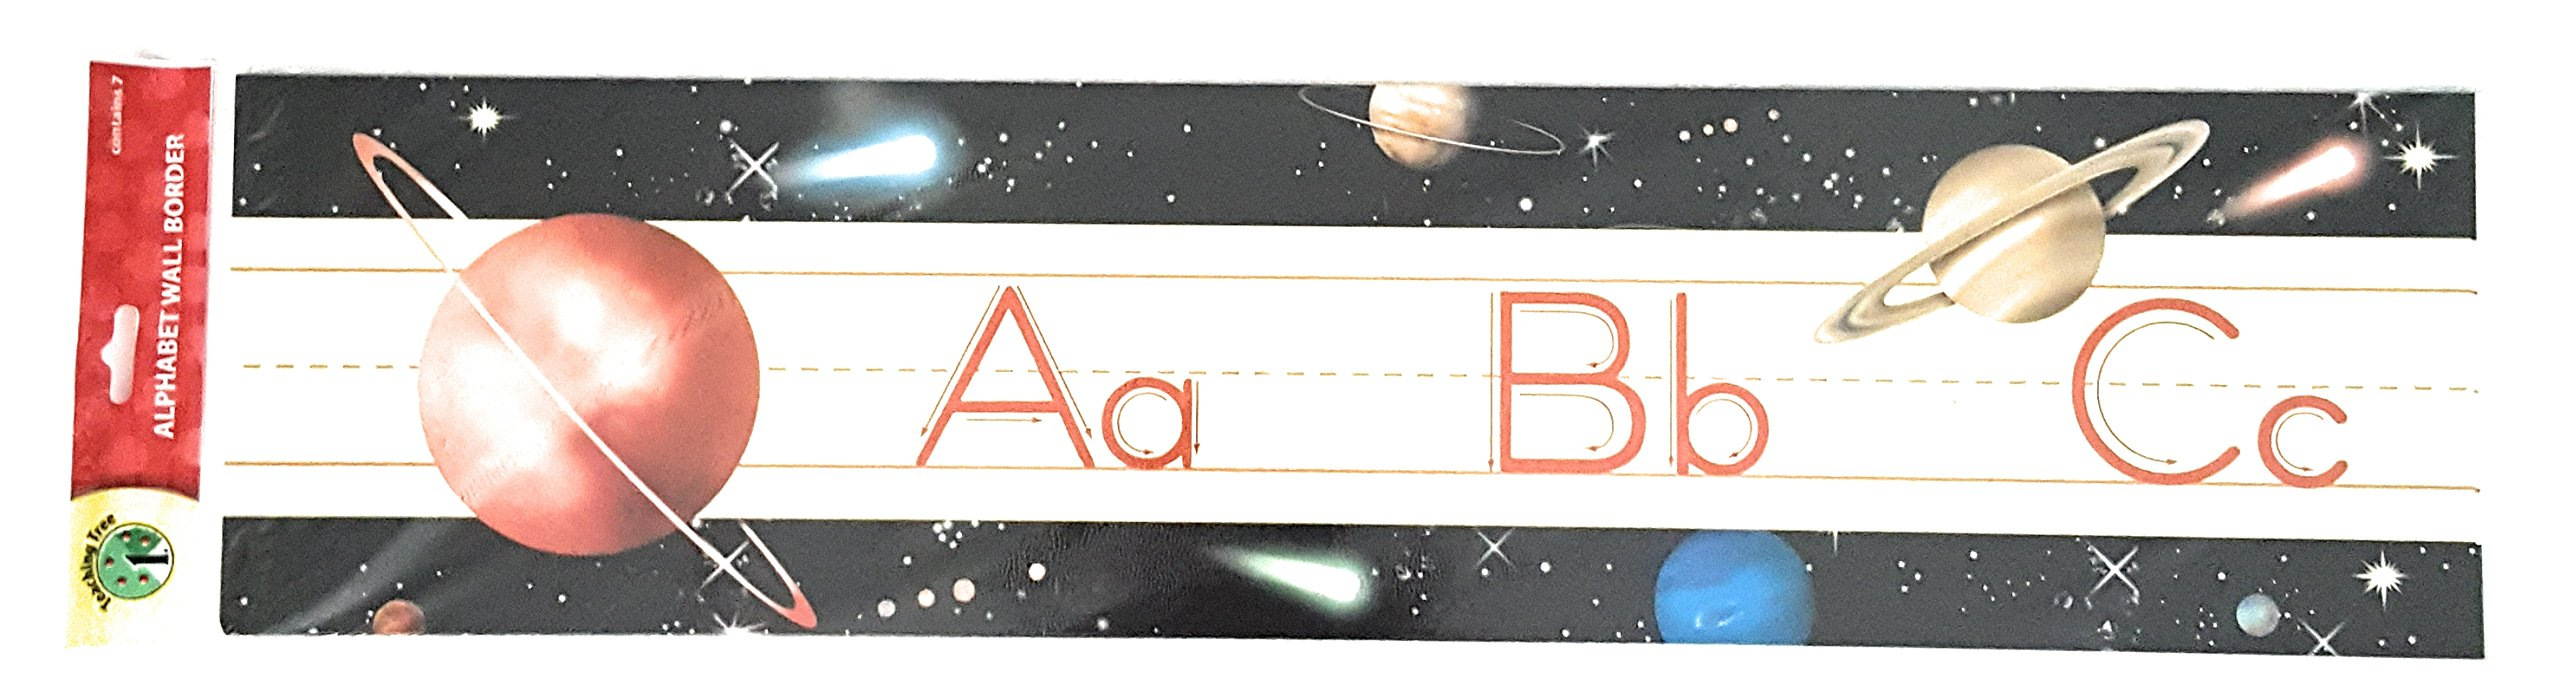 Teaching Tree Manuscript Alphabet Bulletin Back to School Board Creative Strips School Office Resources Scholastic Teacher Teacher's Bulletin Trim Wall Border Decal Classroom Decoration Planets/Space